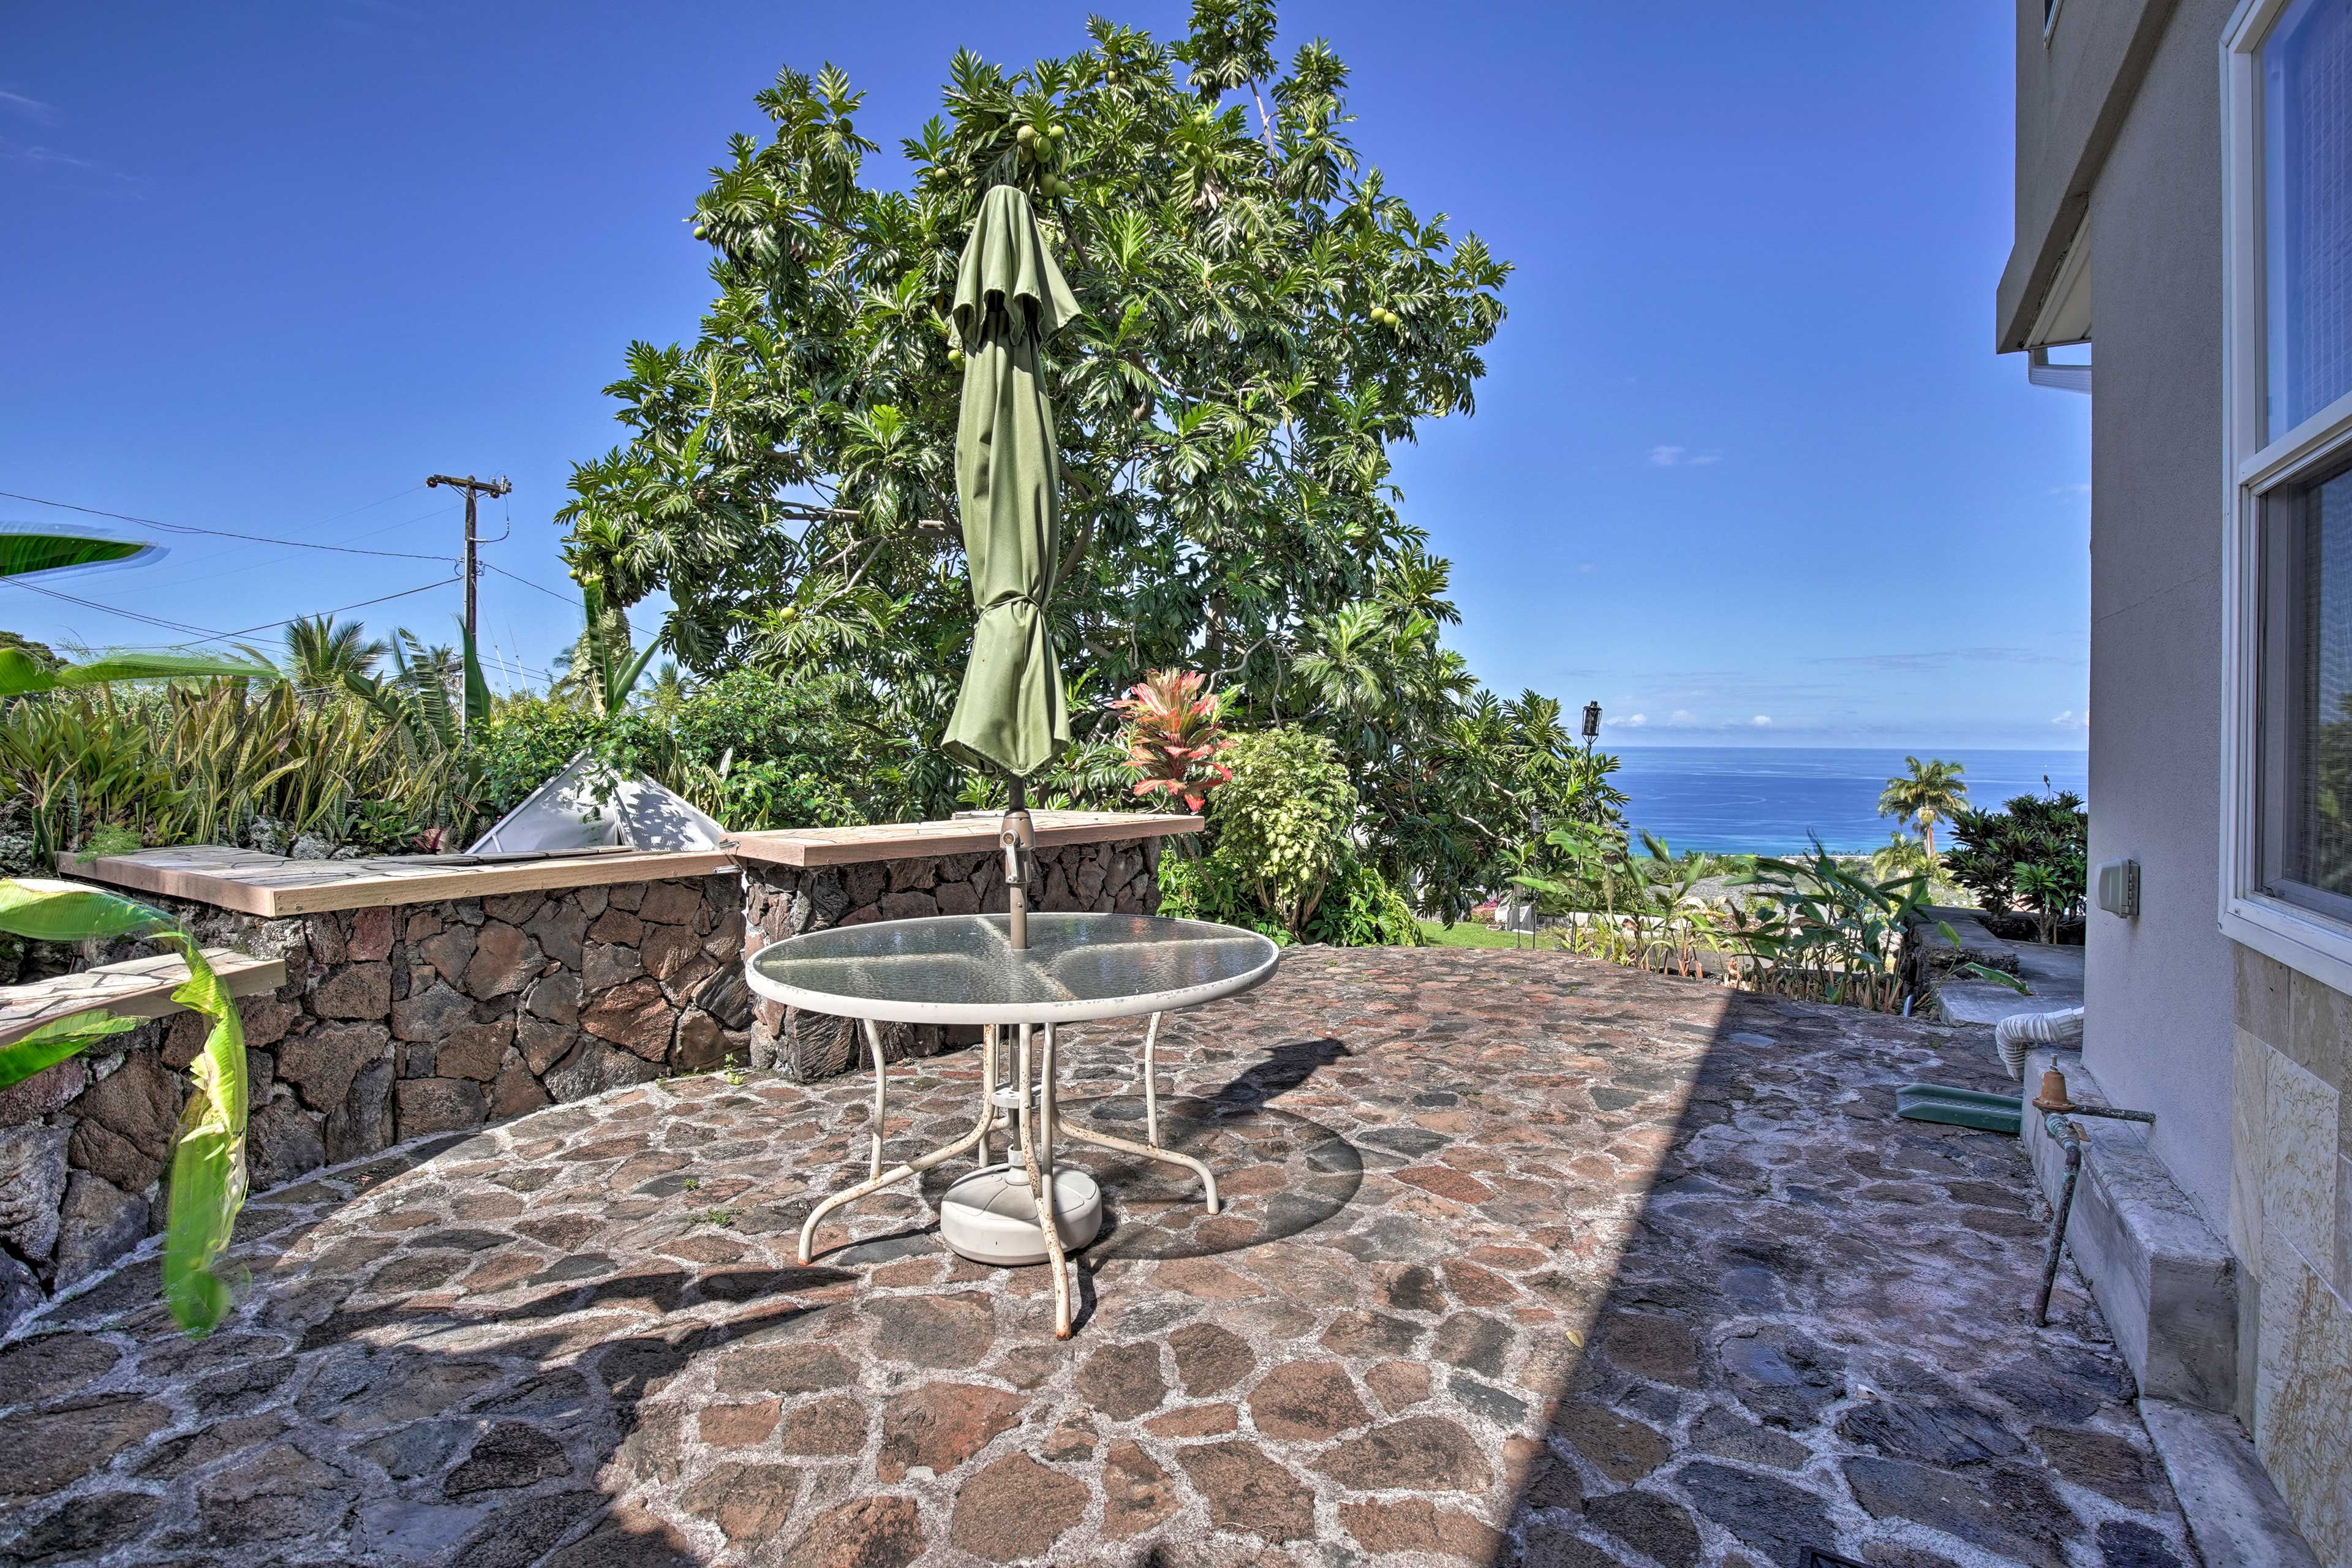 This home has various outdoor spaces designed for soaking up the Hawaiian sun.